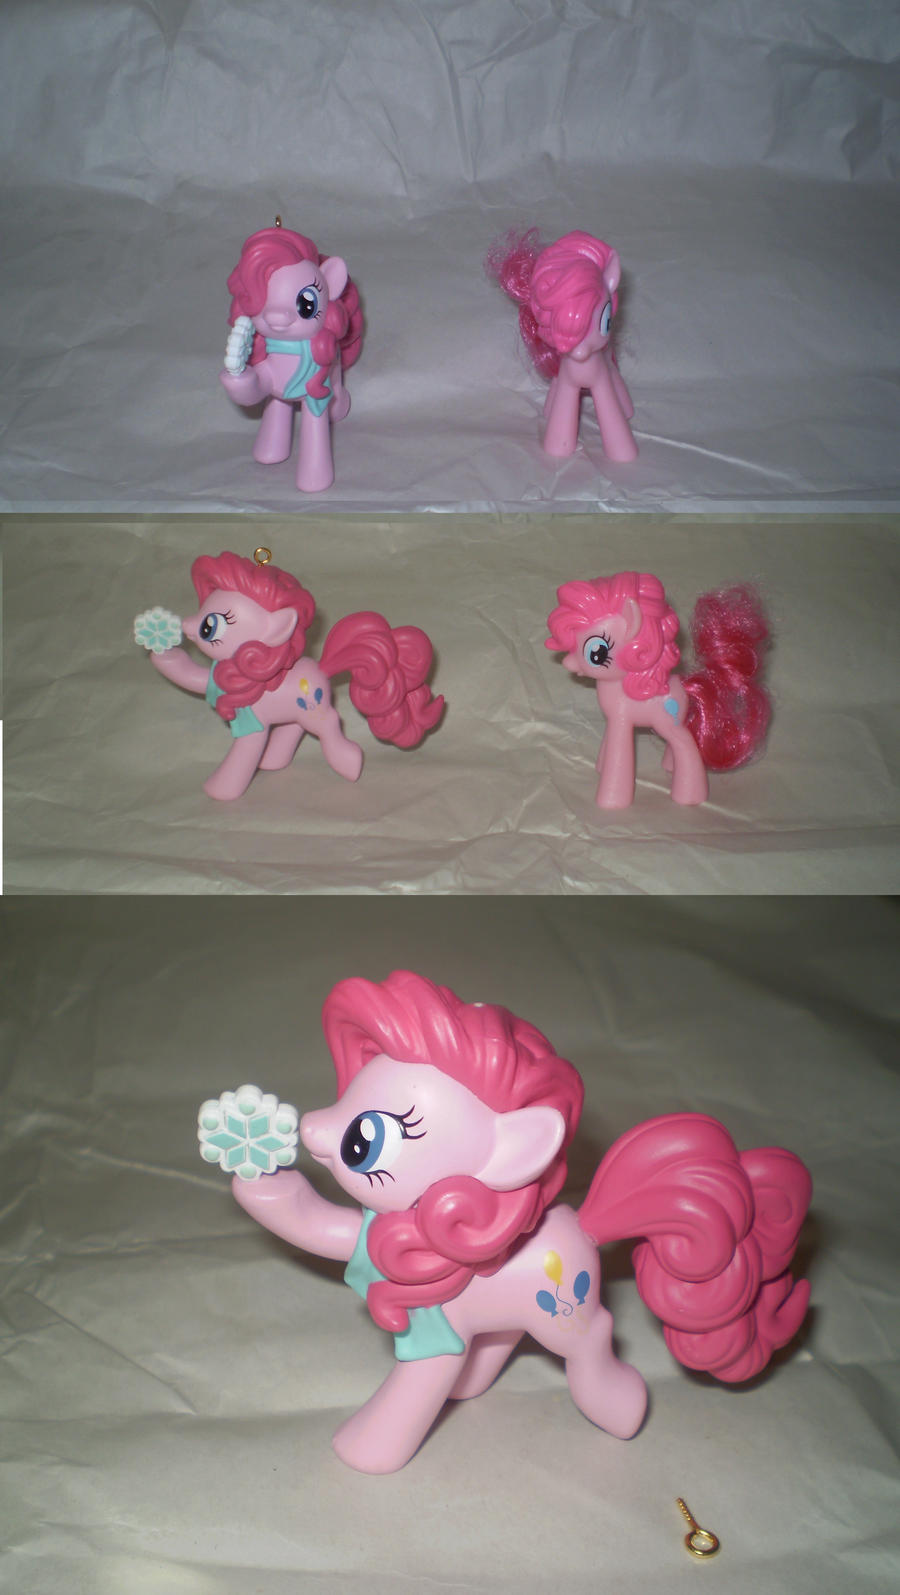 pinkie ornament vs pinkie toy by StarSongPony